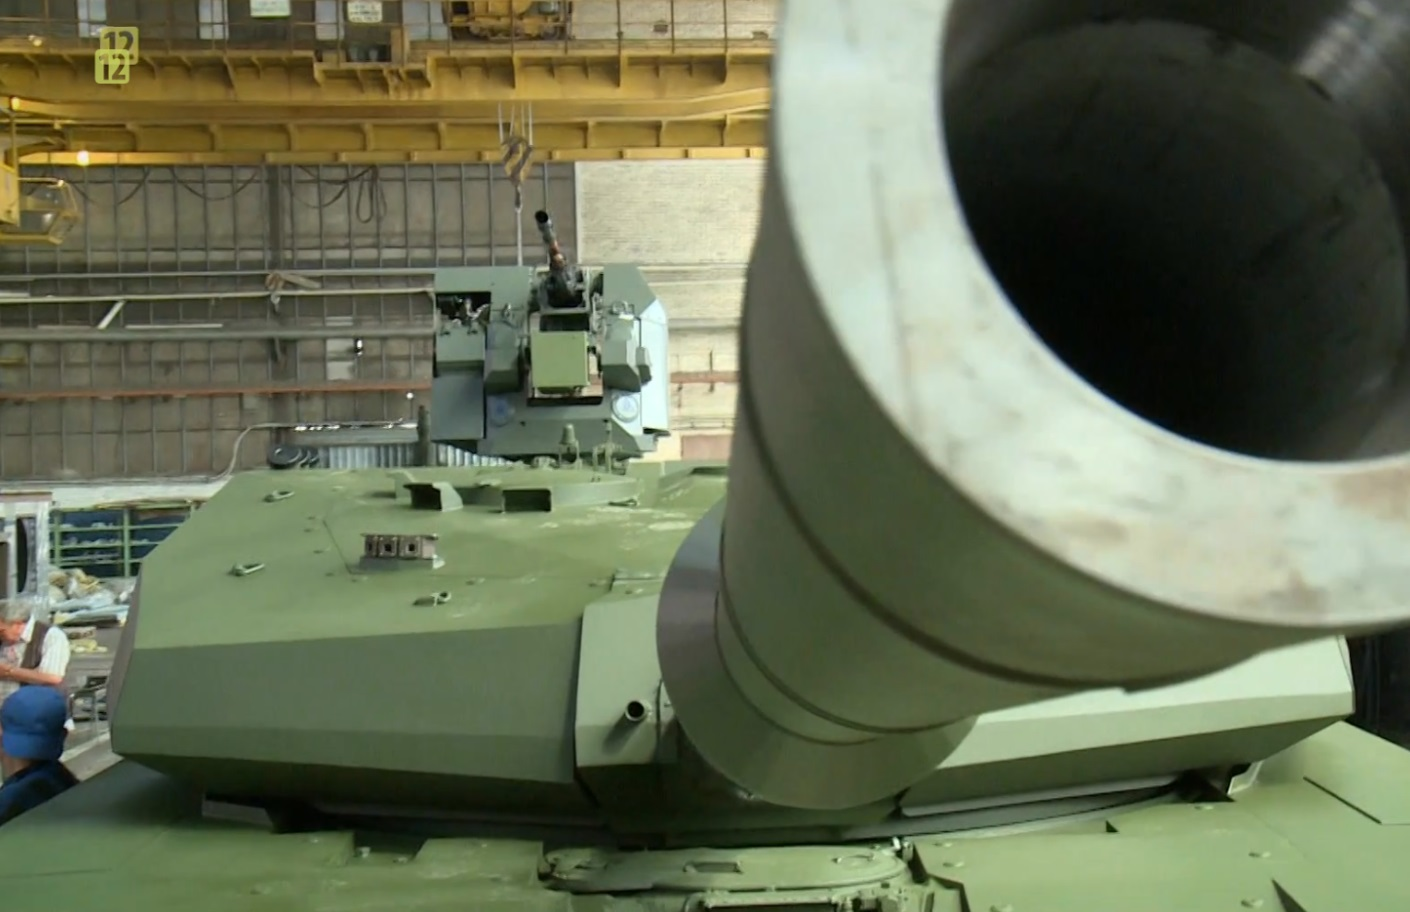 Ukraine to supply T-72 main battle tank spare parts to a Europian country